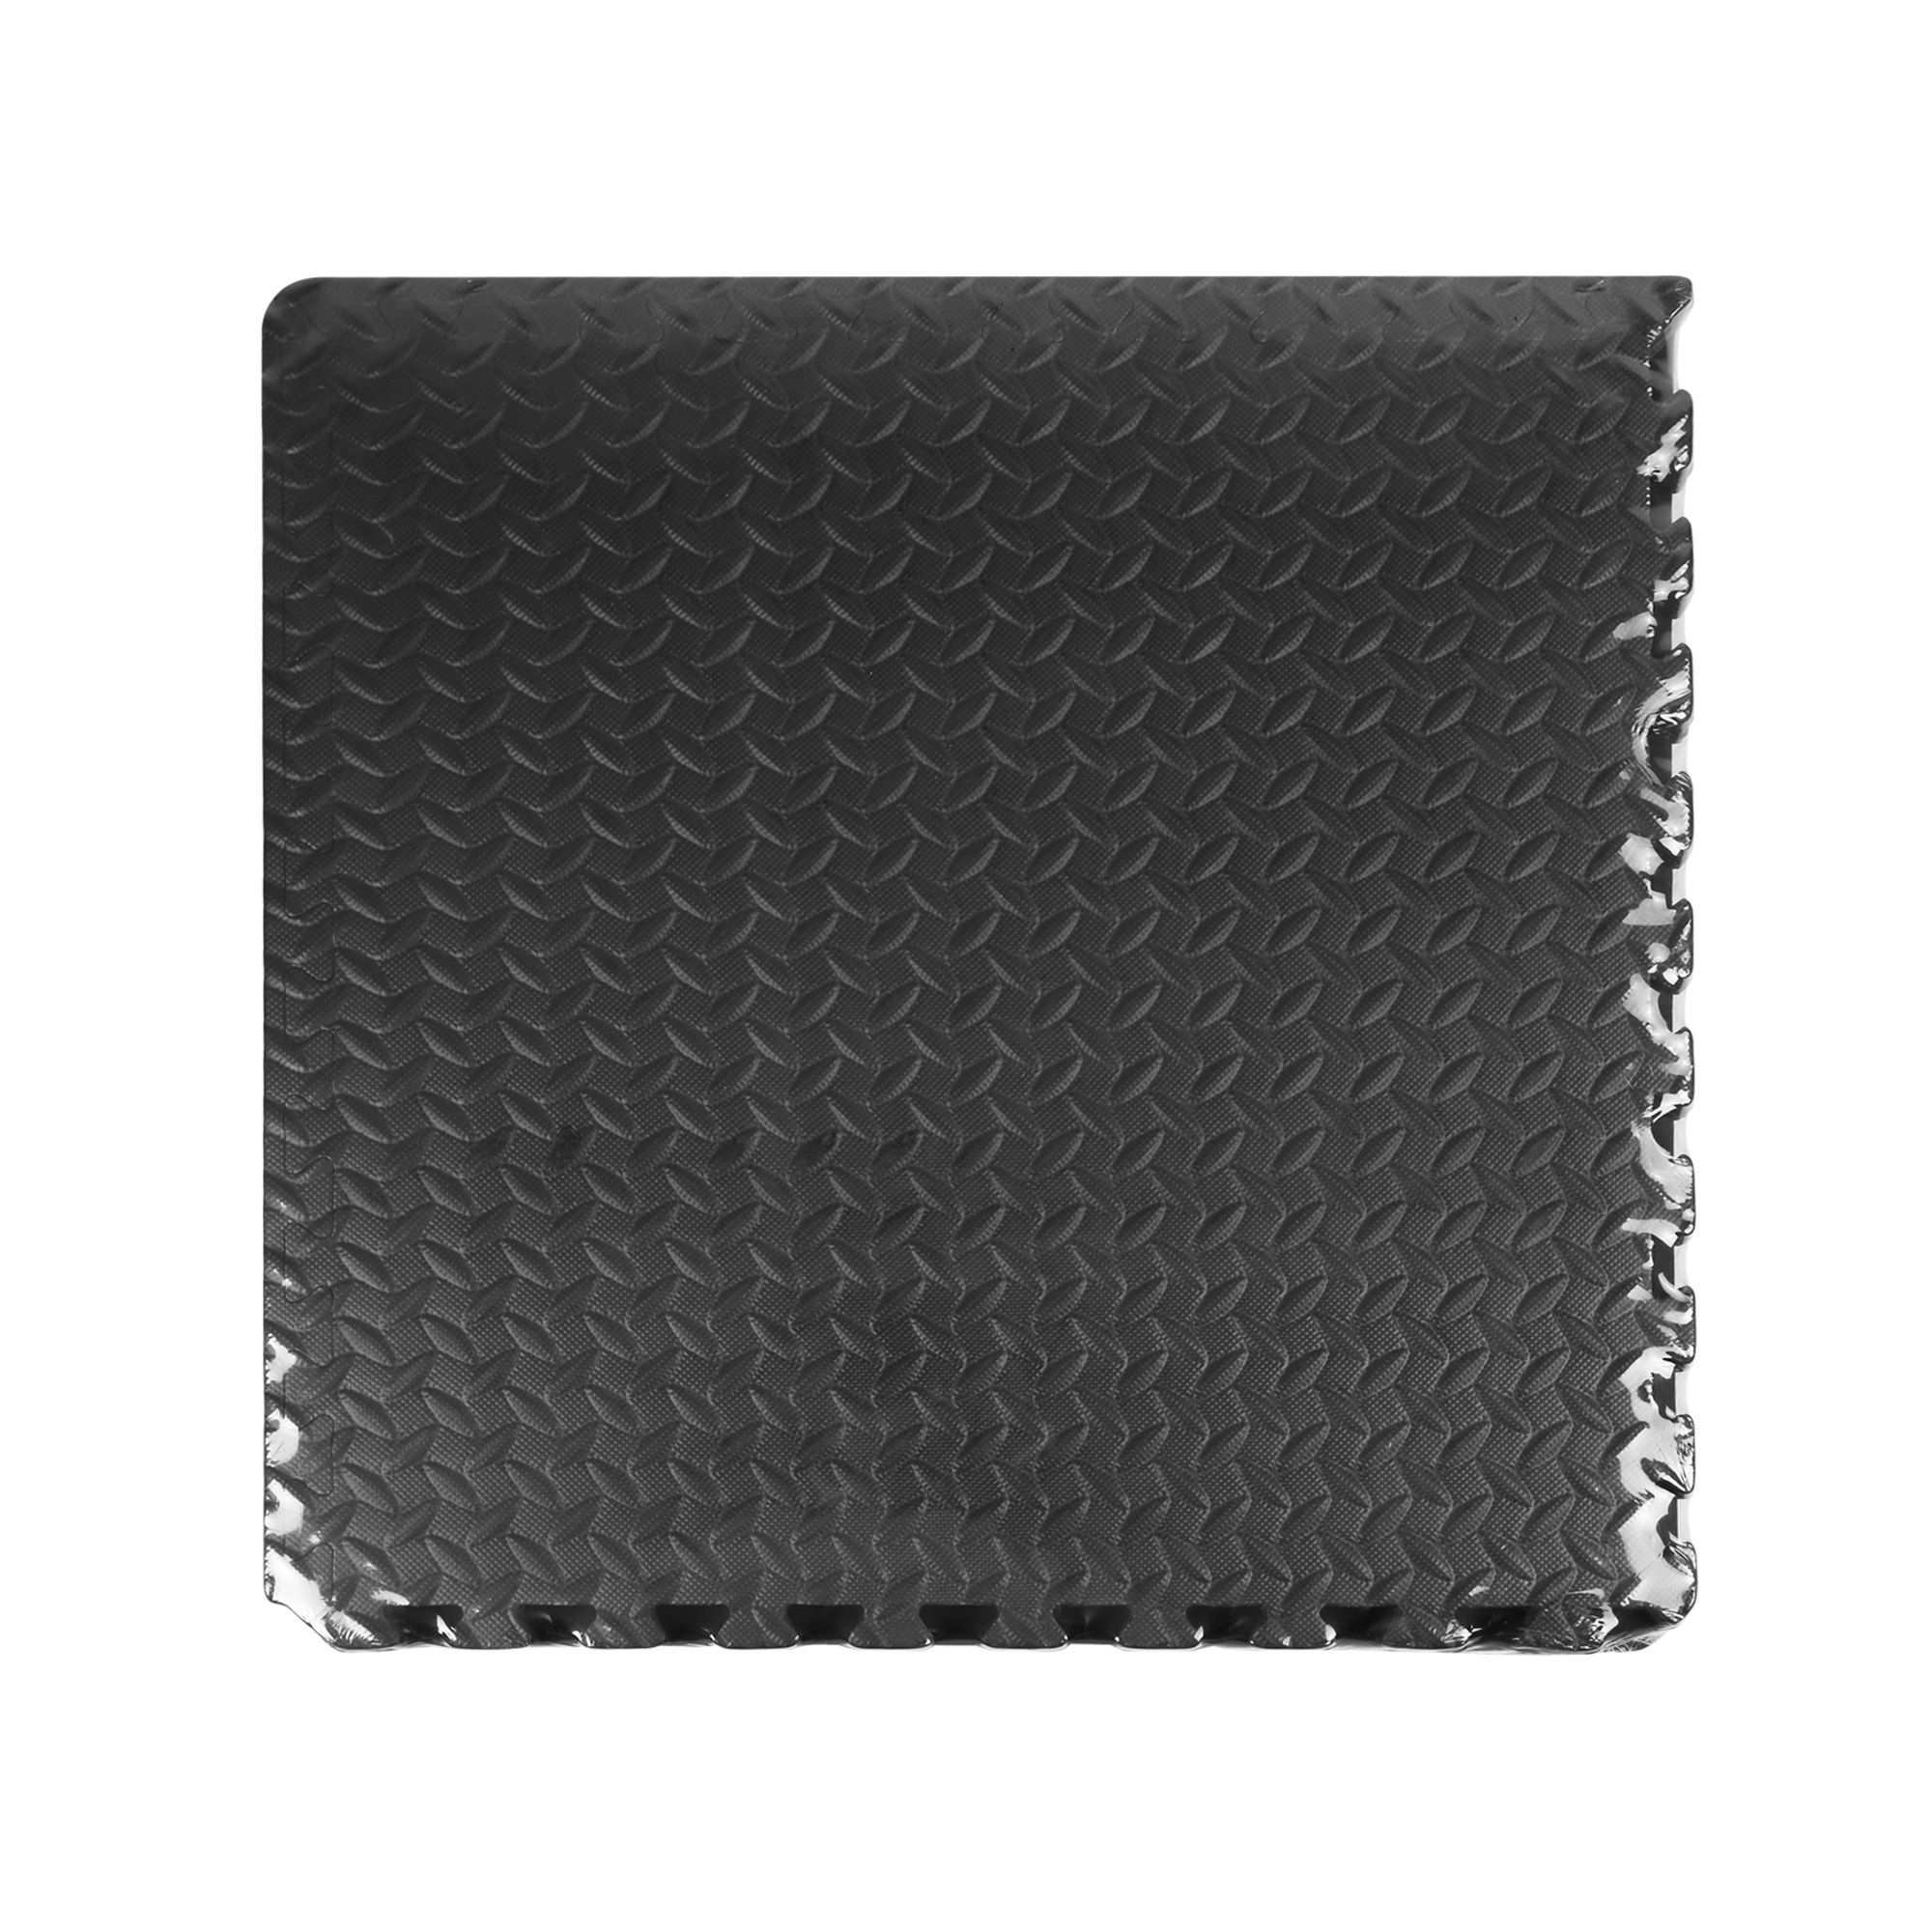 Interlocking Eva Foam Black Floor Mats